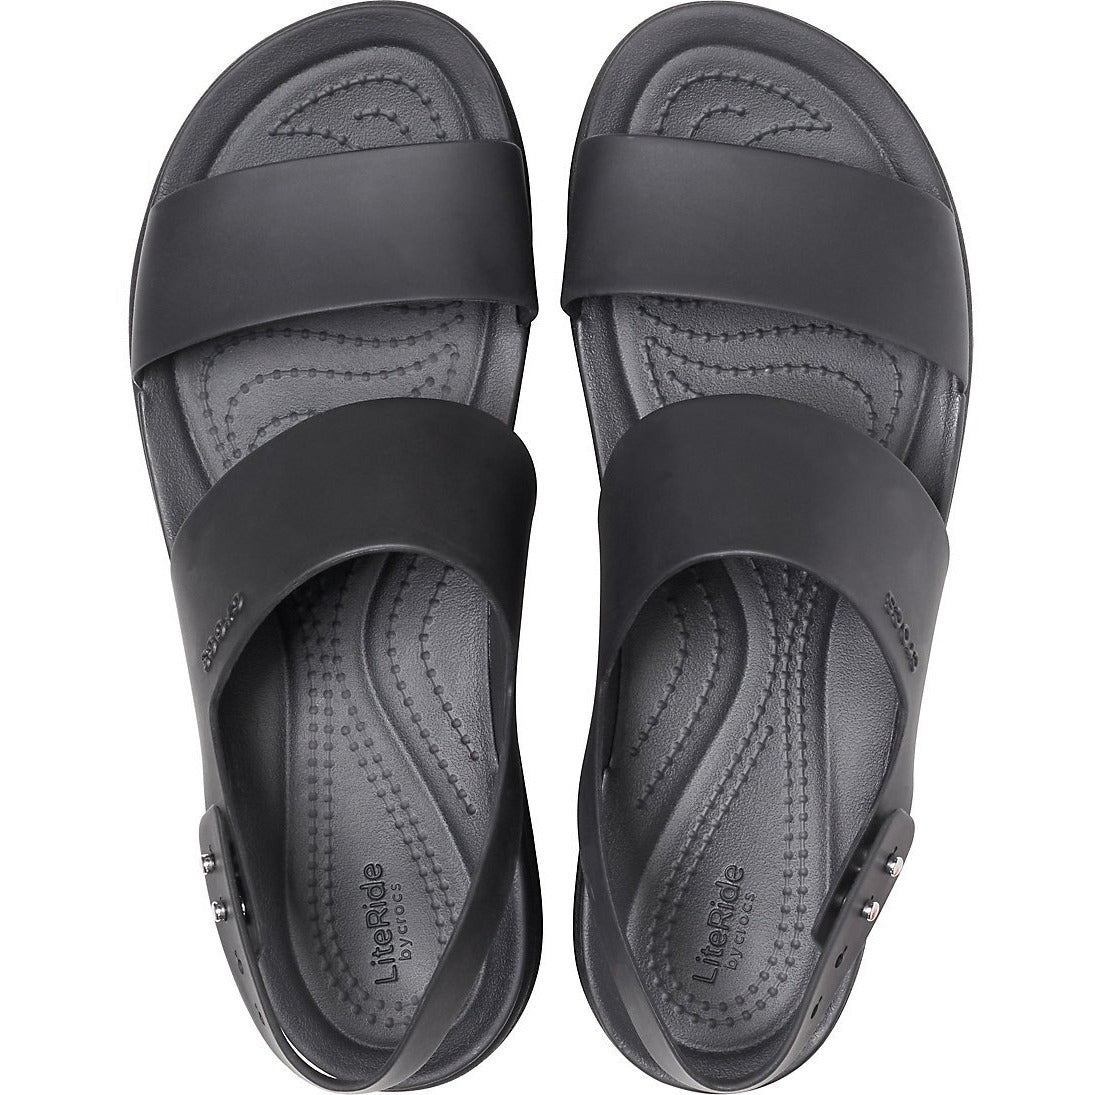 CROCS BROOKLYN LOW WEDGE BLACK/BLACK getset-footwear.myshopify.com